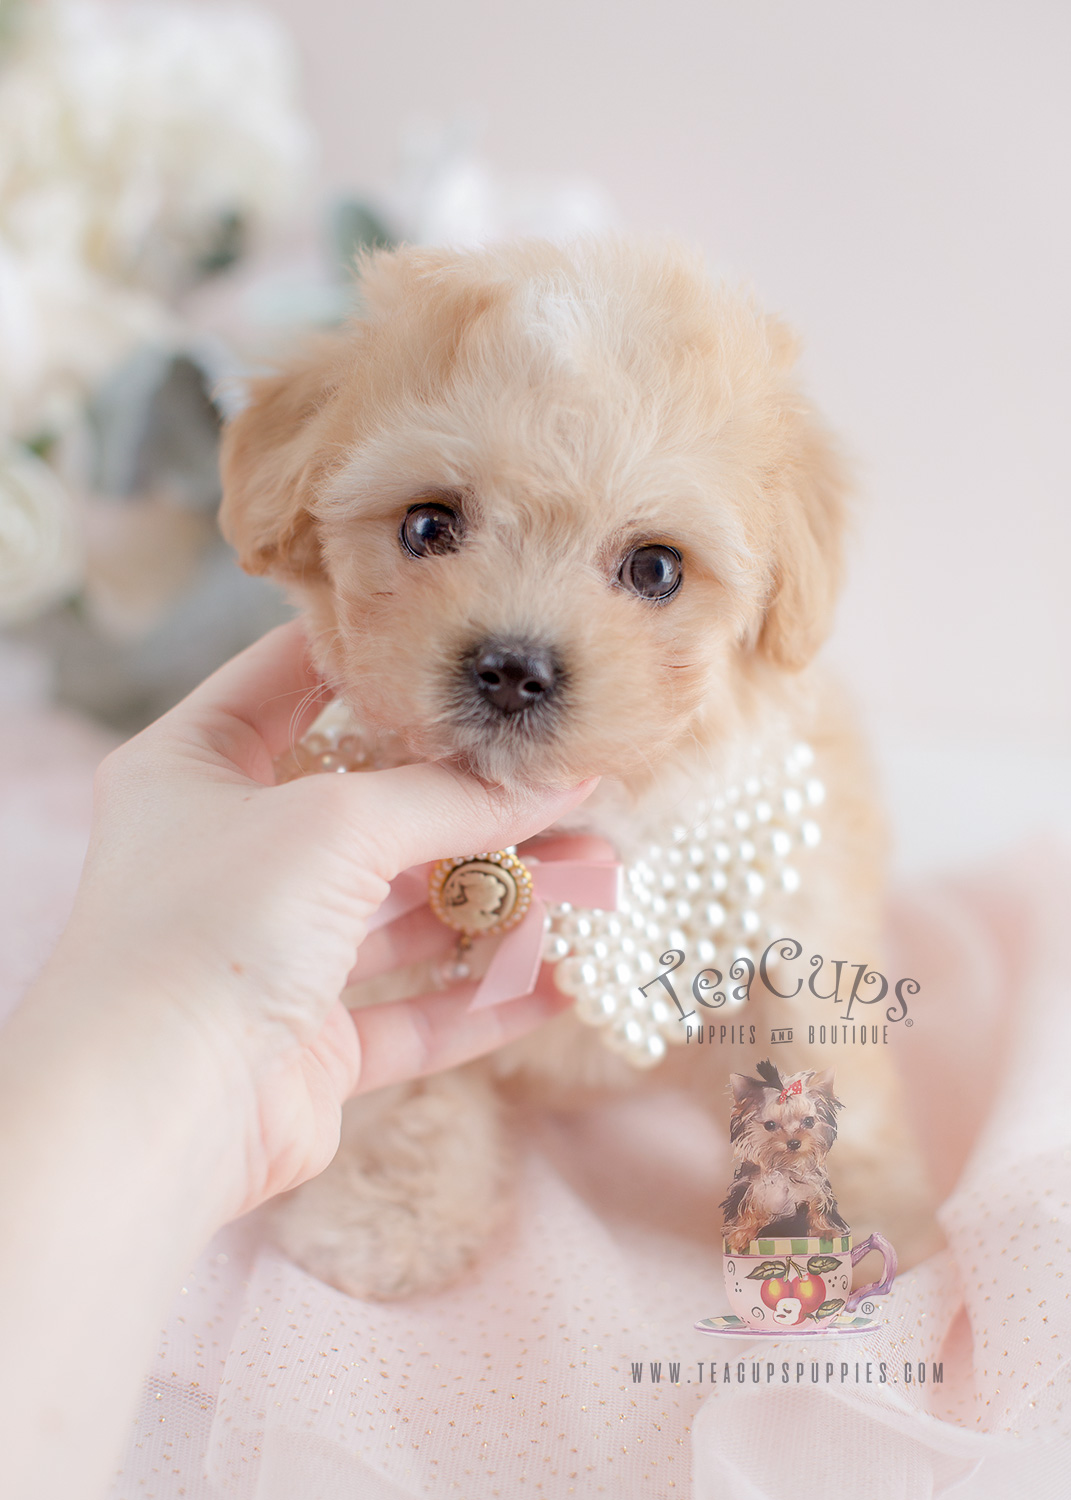 Teacup Puppies - Puppies and Dogs for Sale